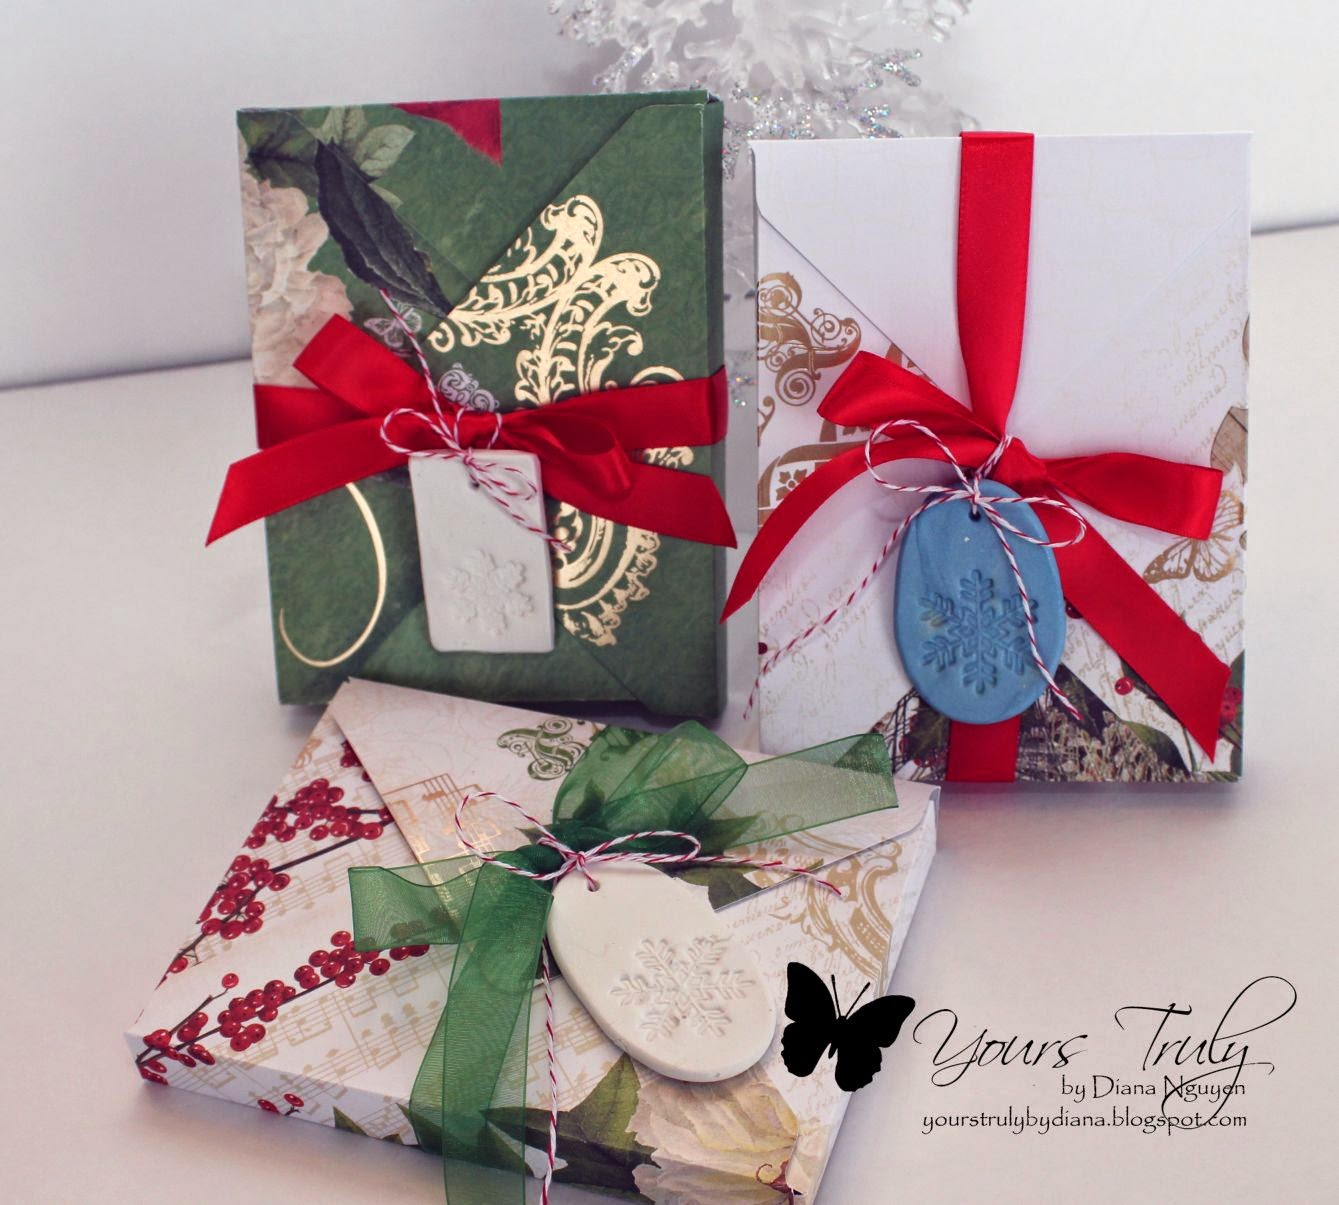 Diana Nguyen, gift box, teacher gift